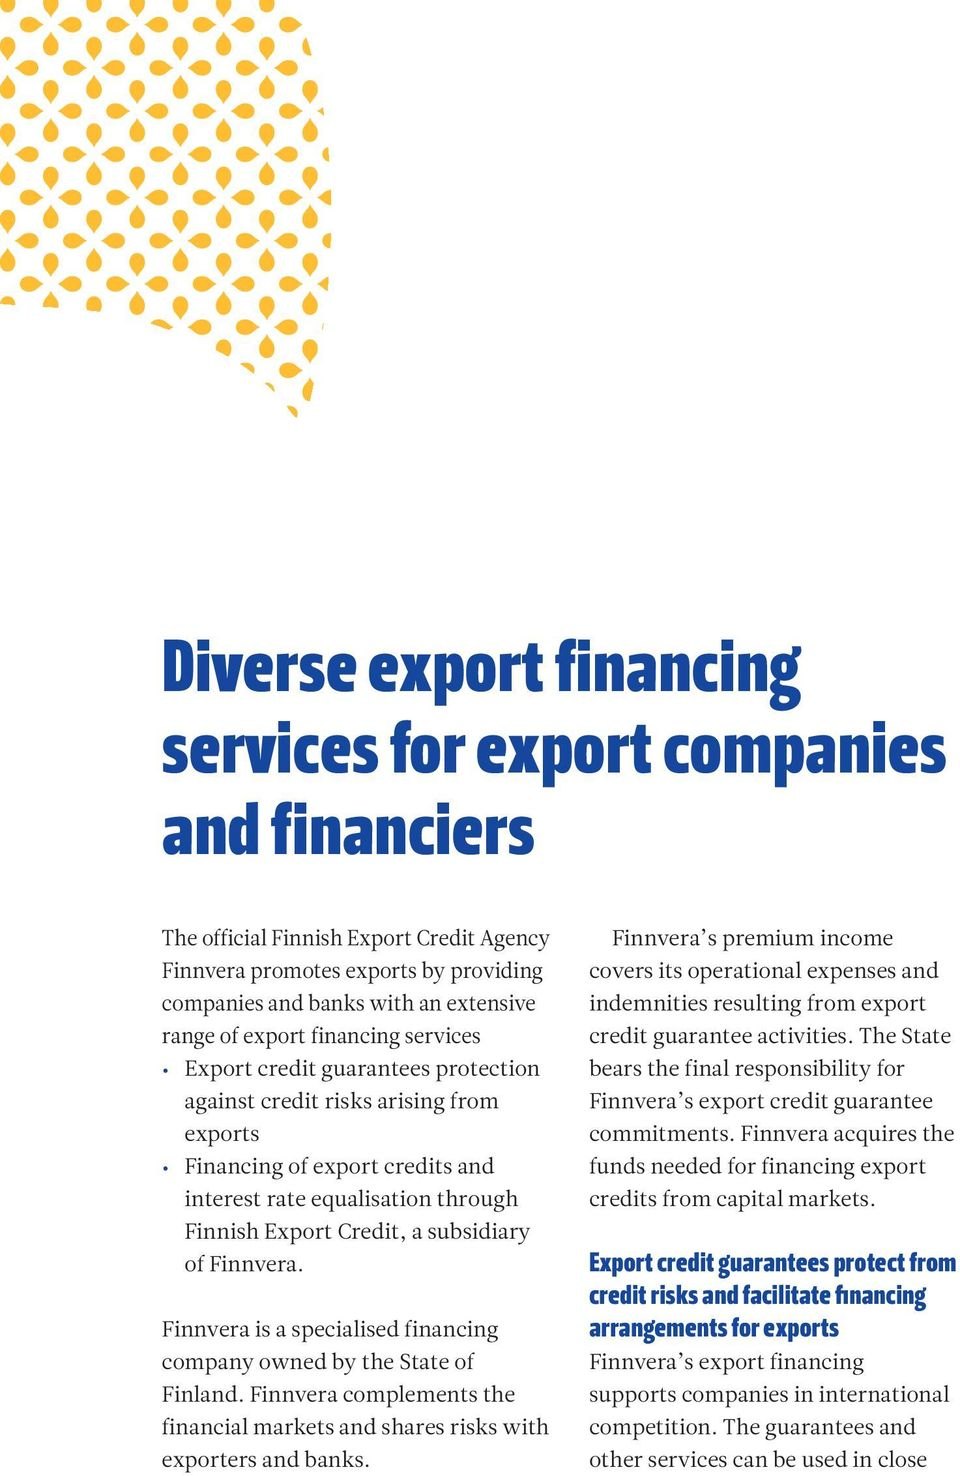 subsidiary of Finnvera. Finnvera is a specialised financing company owned by the State of Finland. Finnvera complements the financial markets and shares risks with exporters and banks.